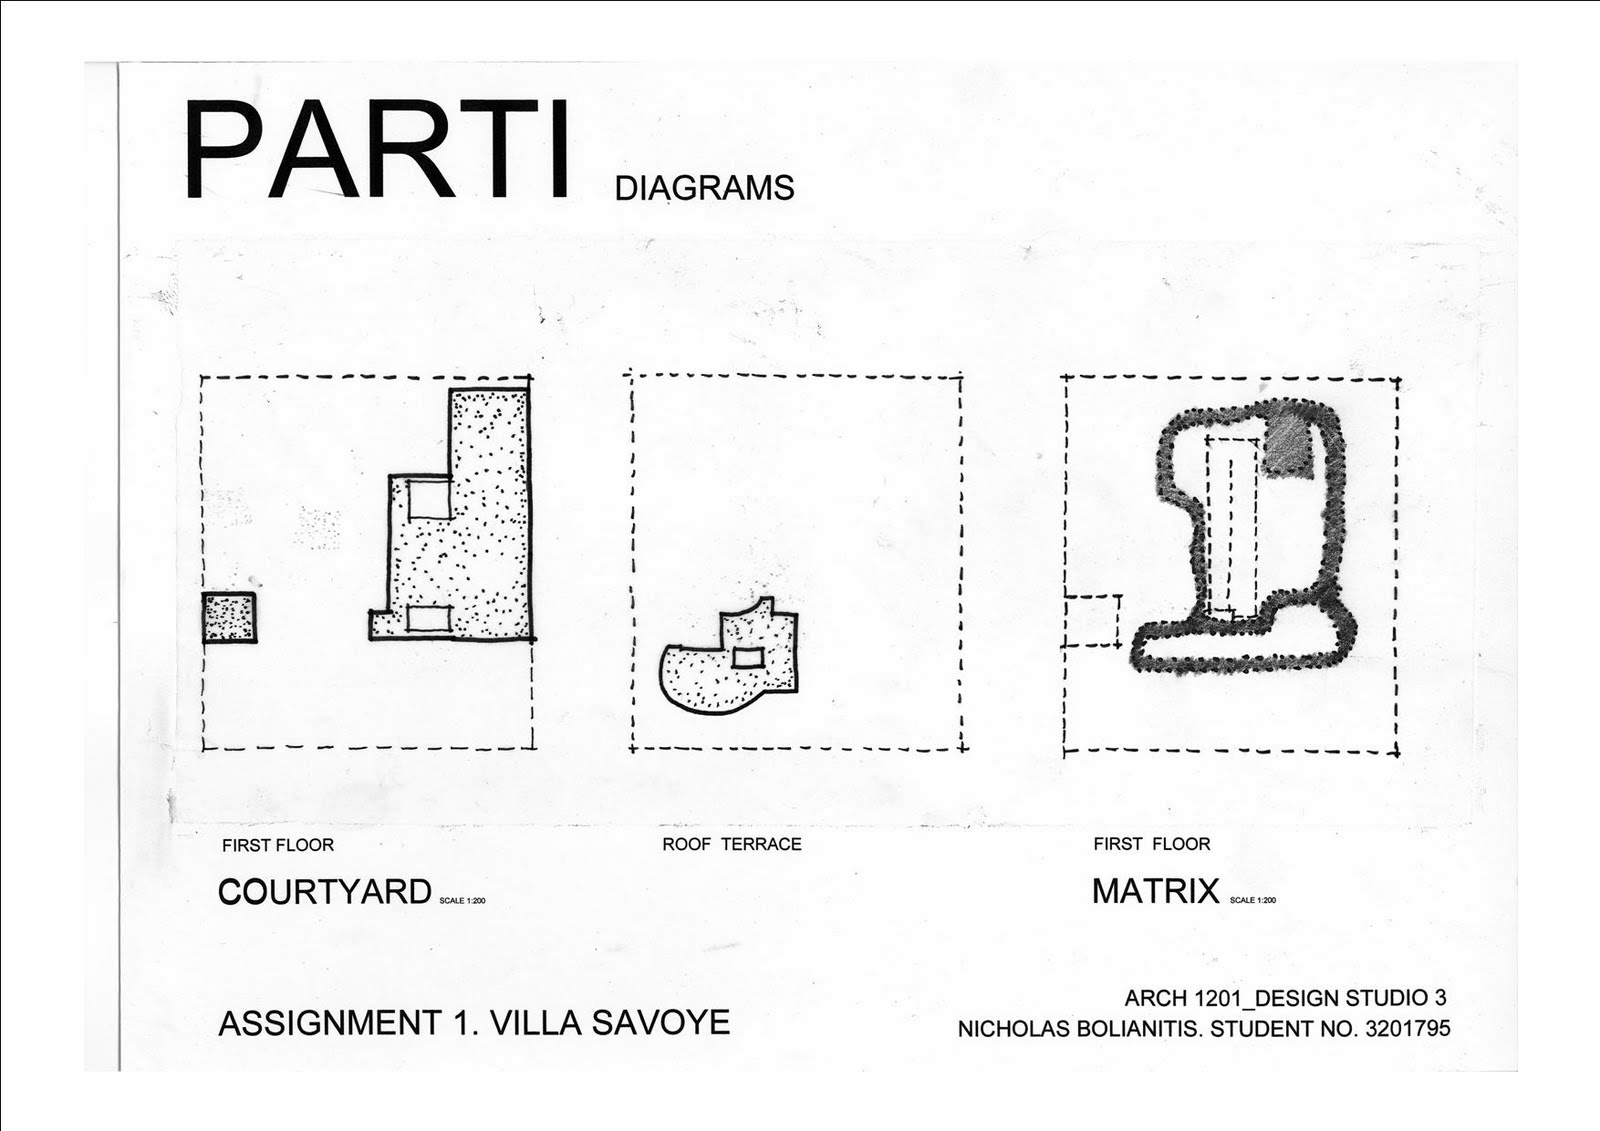 Complete House Plans Nicholas Bolianitis Final Drawings Parti And Poche